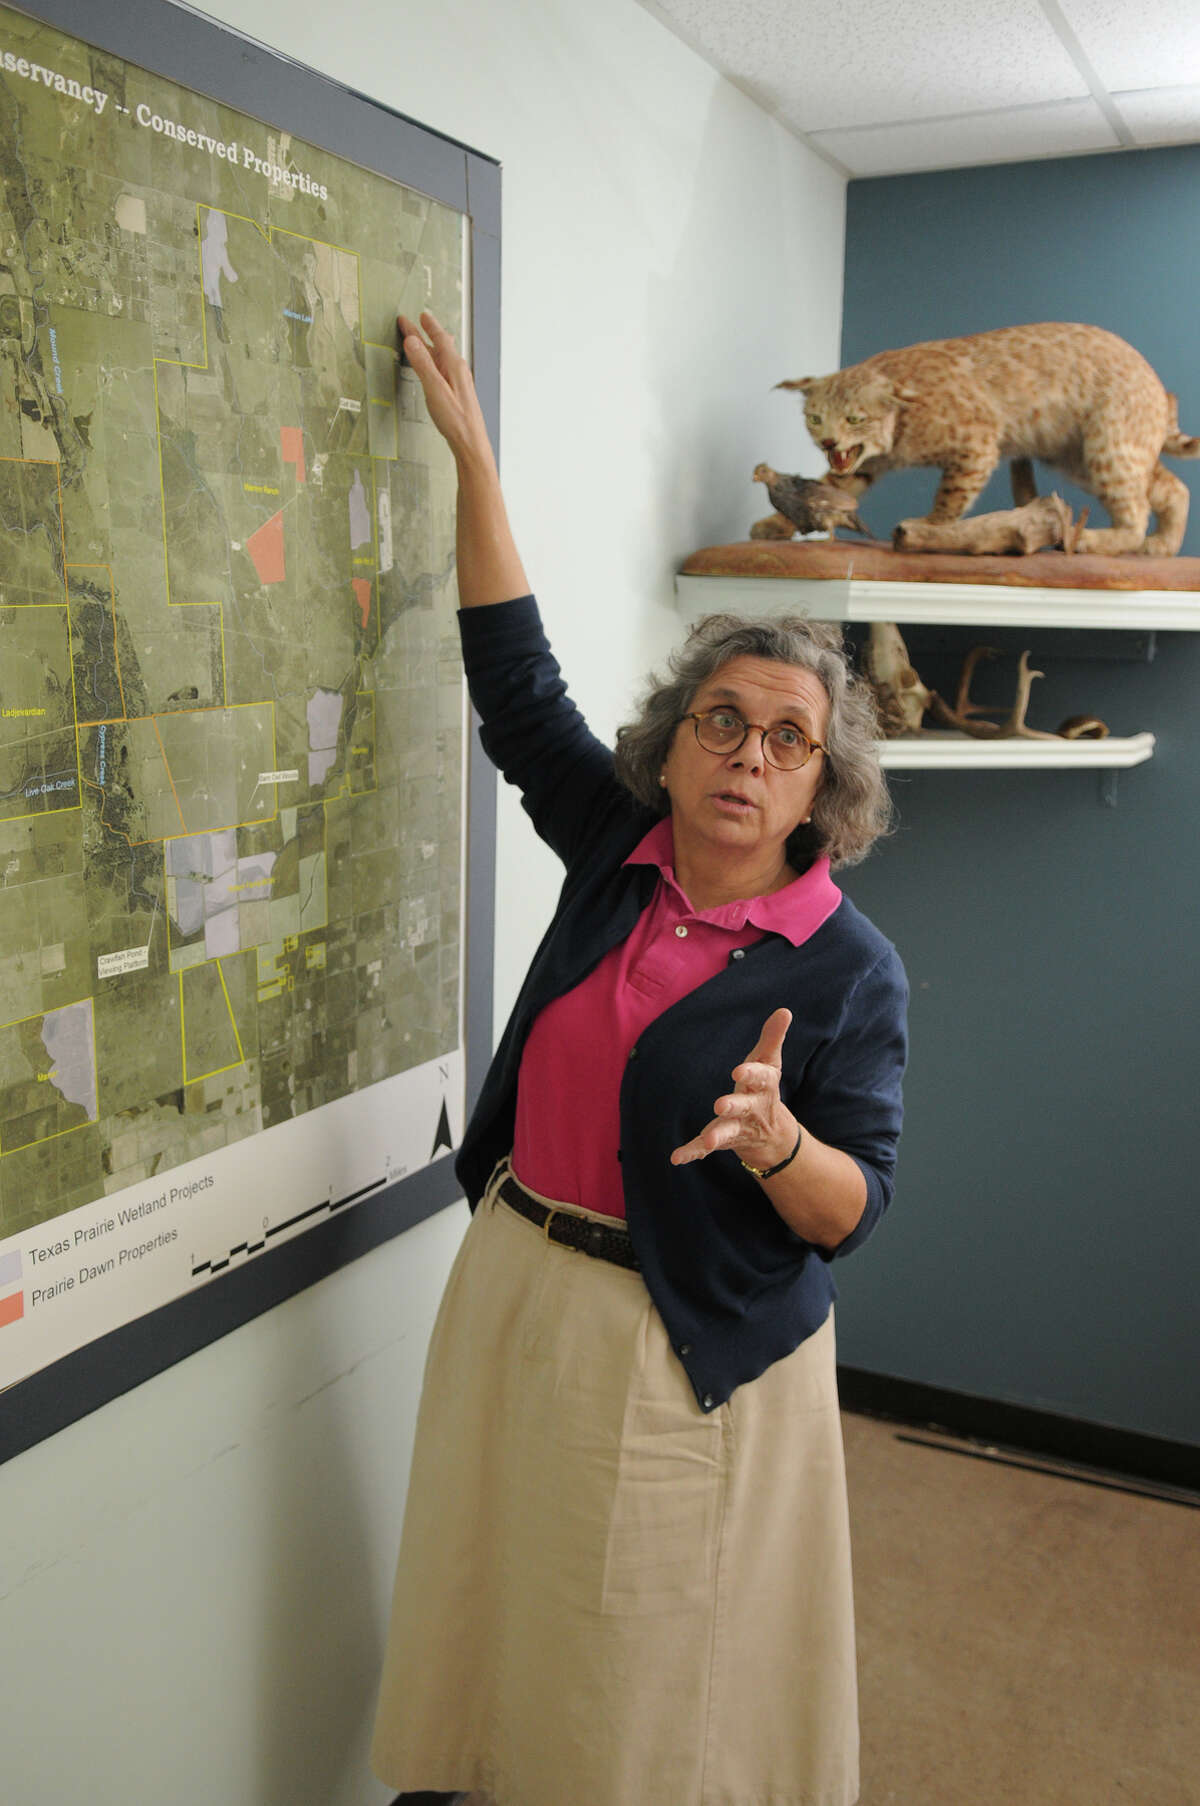 Mary Anne Piacentini, Executive Director of the Katy Prairie Conservancy, discusses the proposal of an electric line that may cross the prairie in Waller.